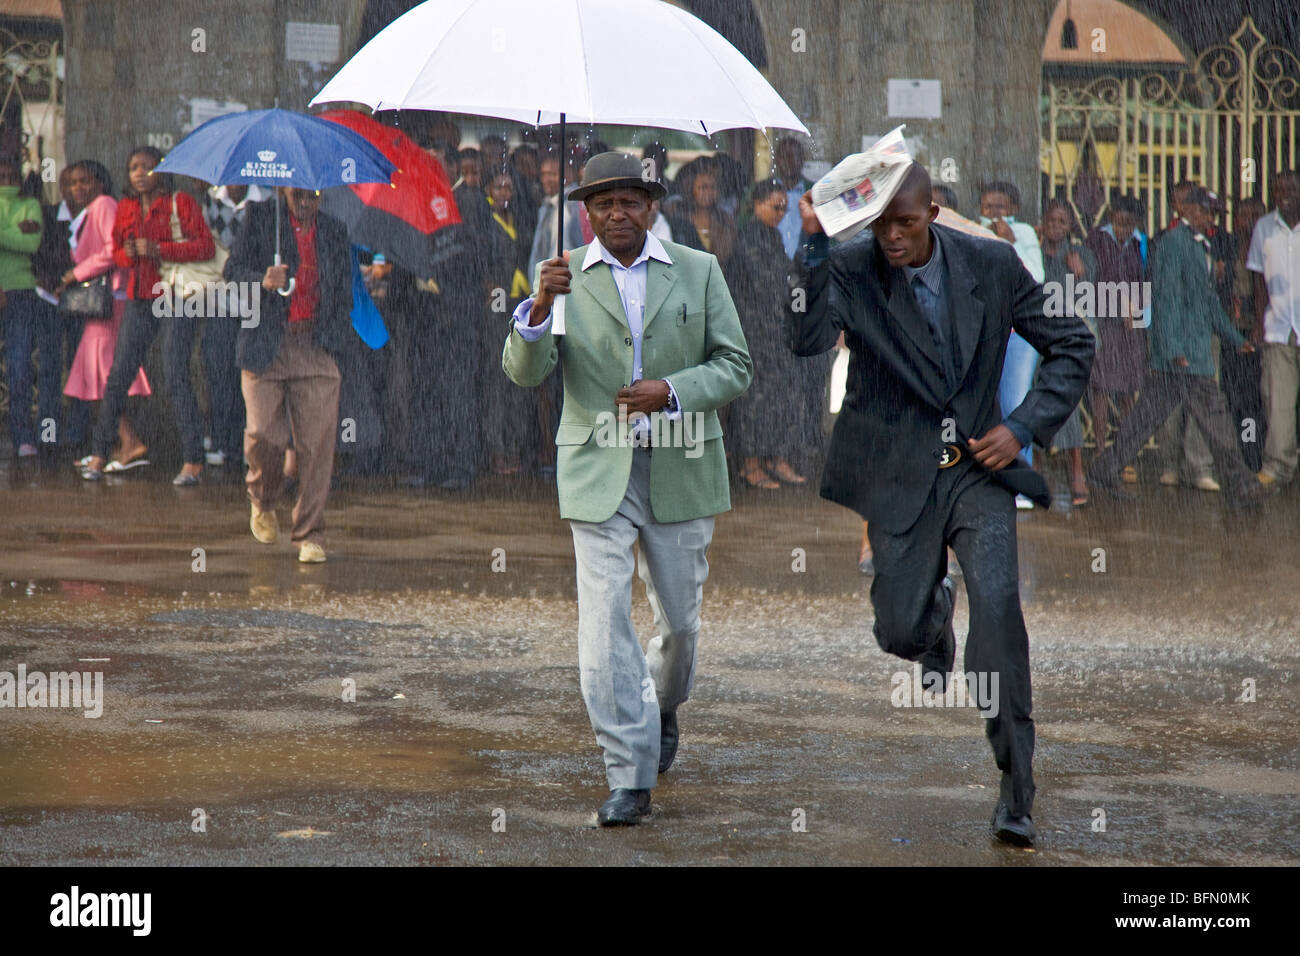 Kenya, Nairobi.  Commuters brave the rain at Nairobi Railway Station. - Stock Image